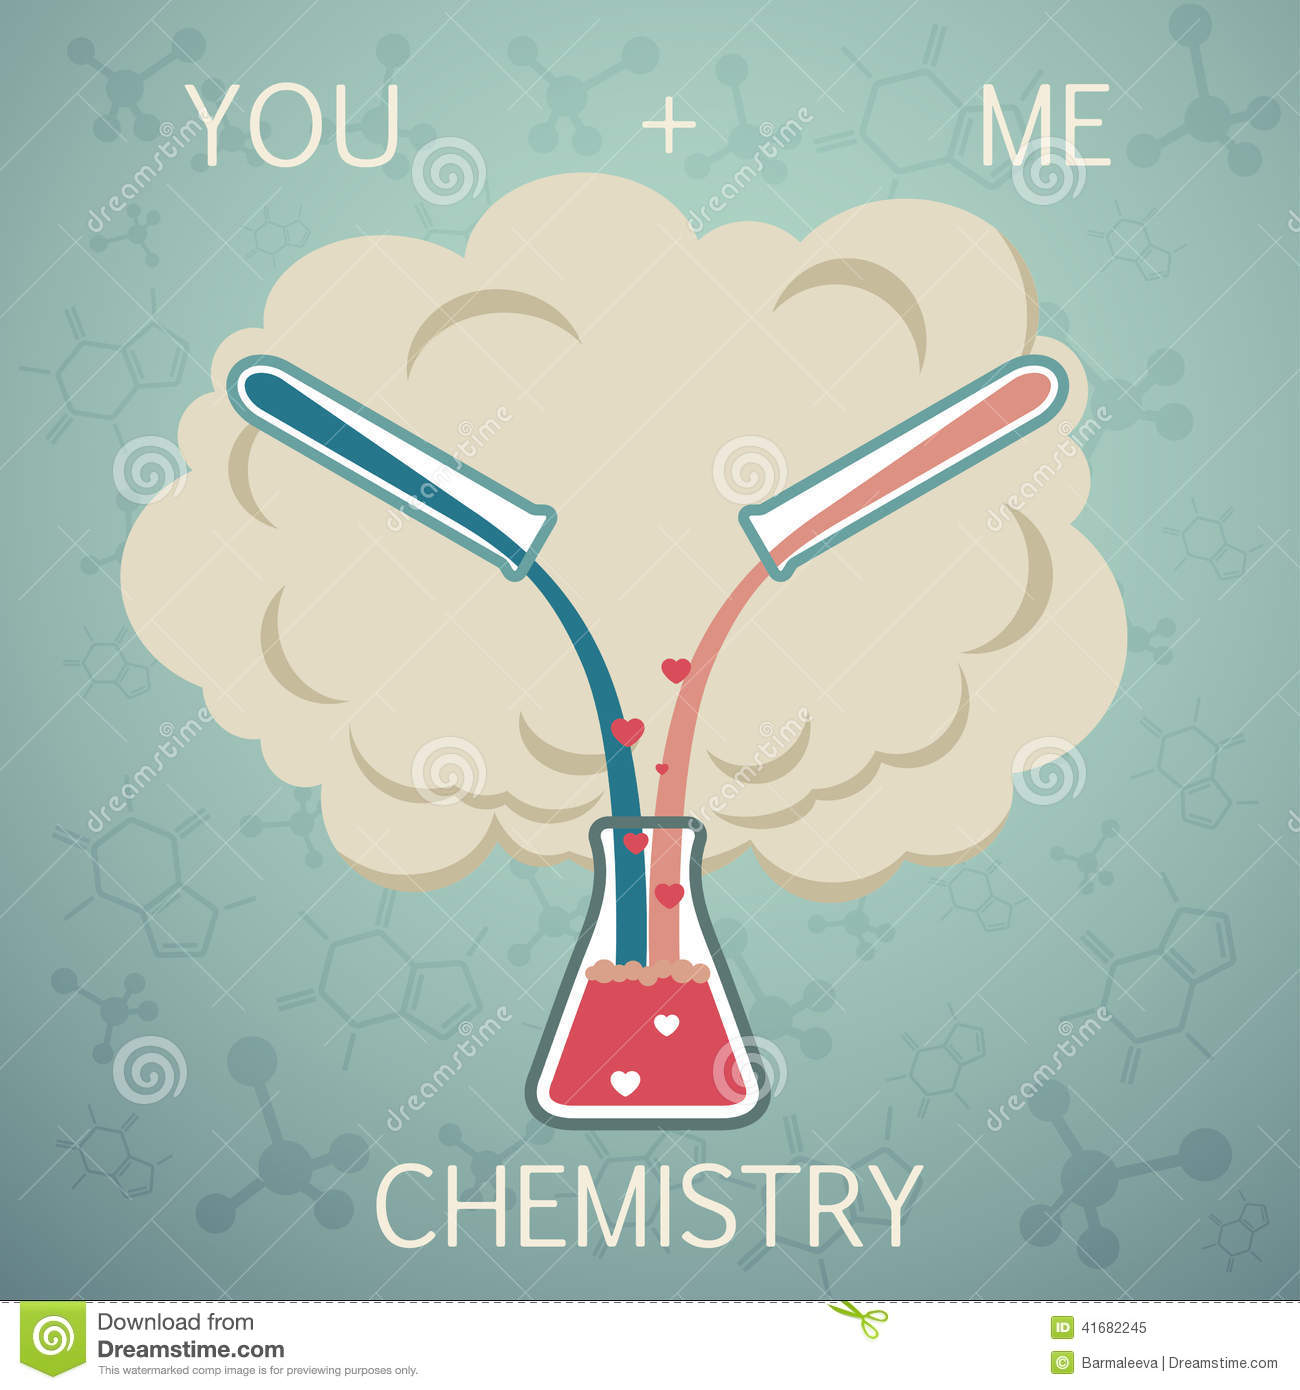 Chemistry dating signup